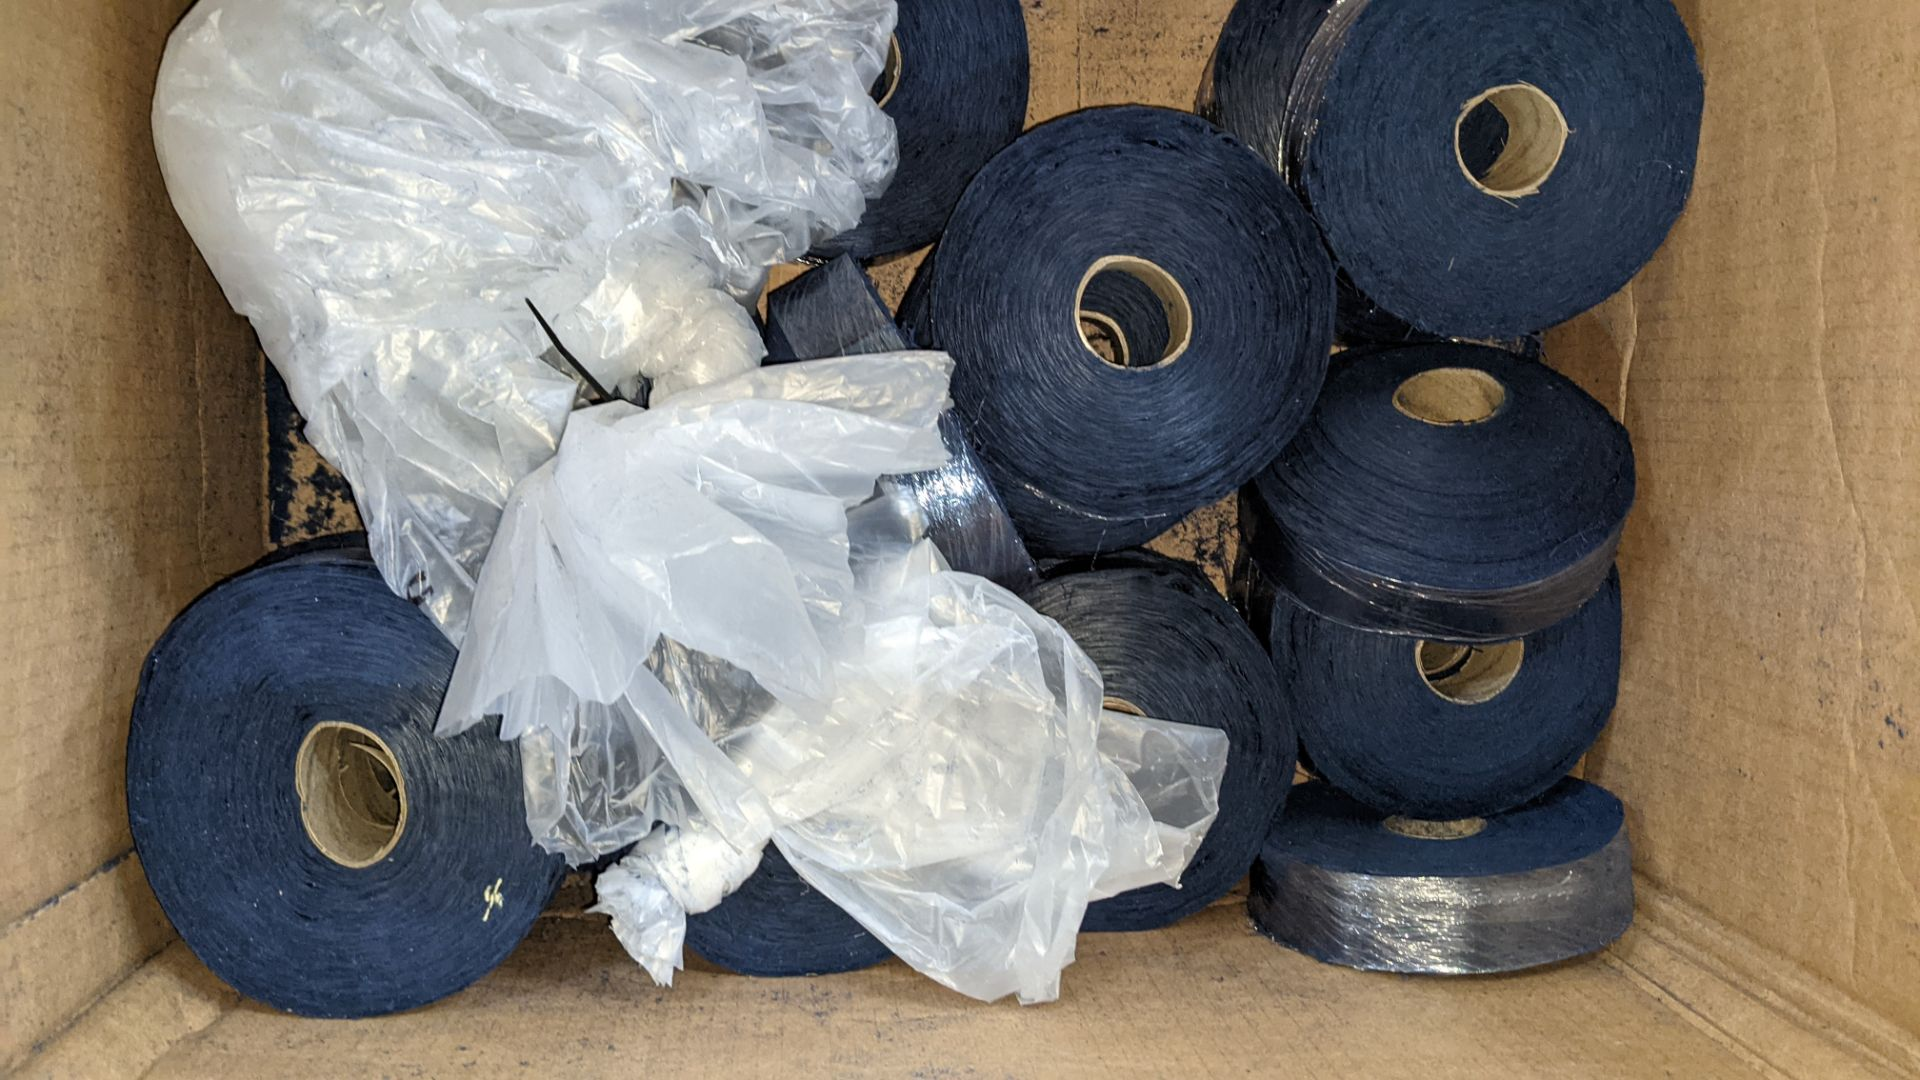 3 boxes/part boxes of blue fabric tape - Image 4 of 6